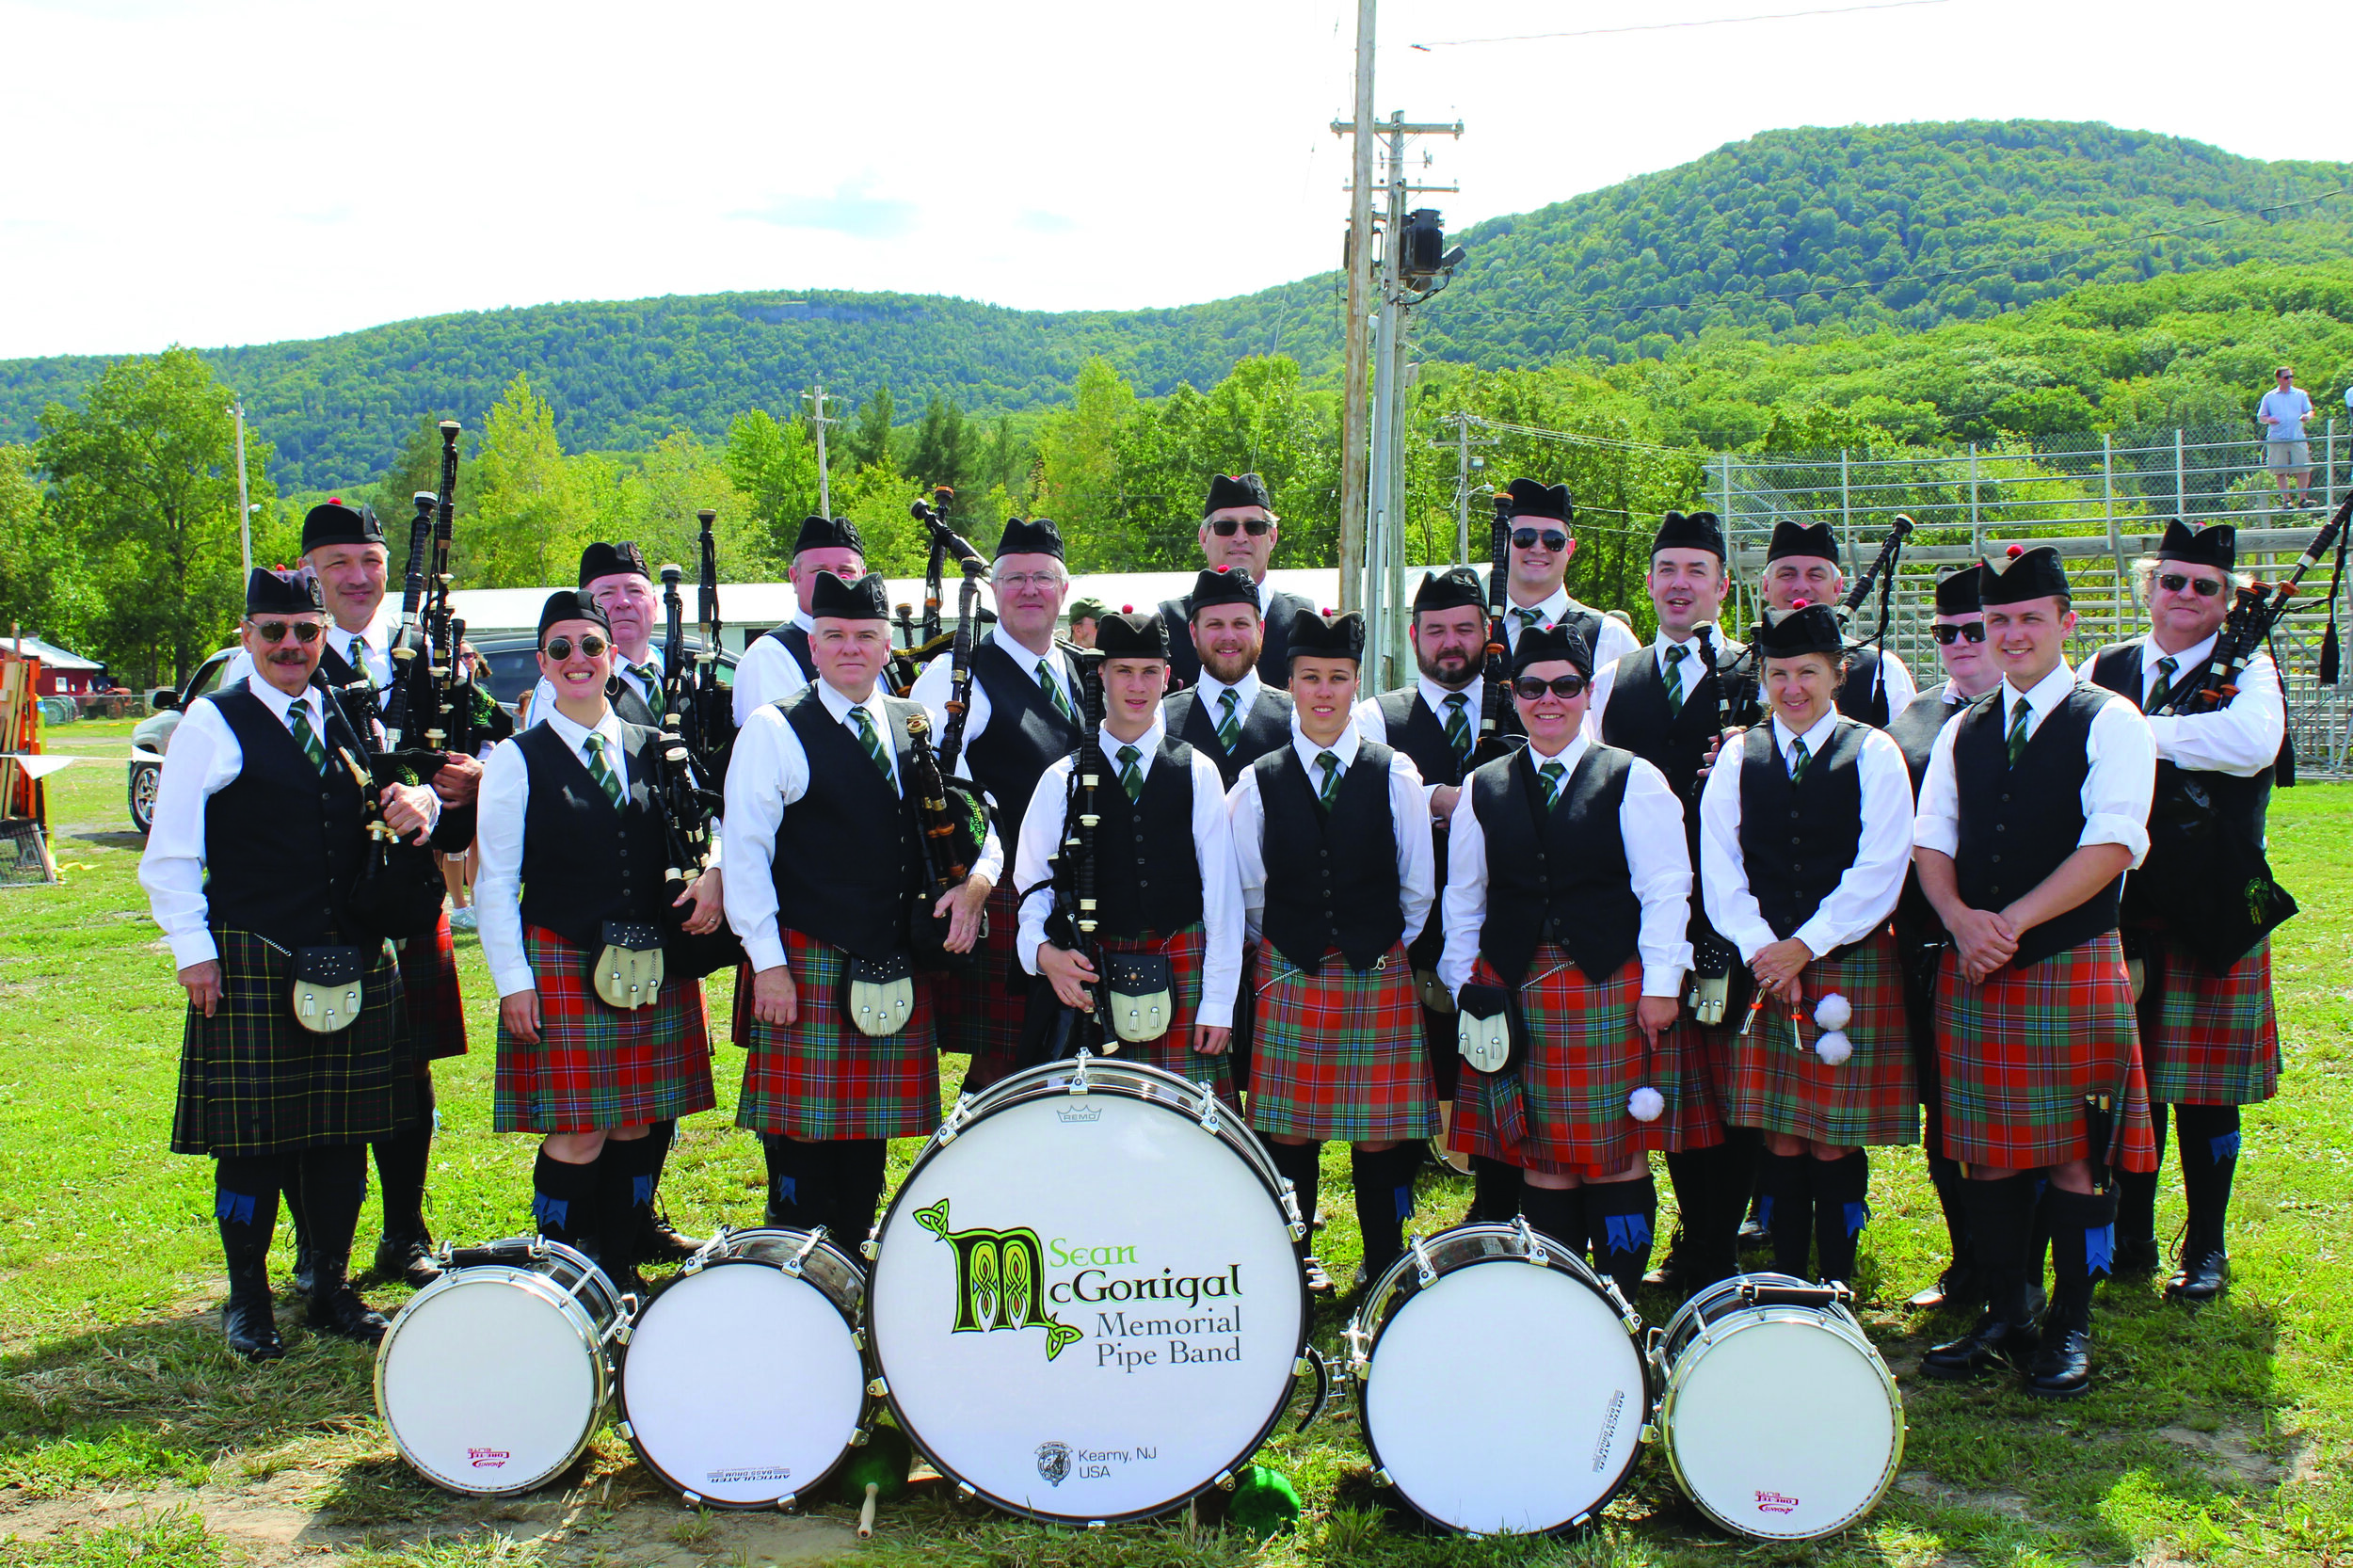 Sean McGonigal Memorial Pipe Band at the 2019 Capital District Scottish Games.